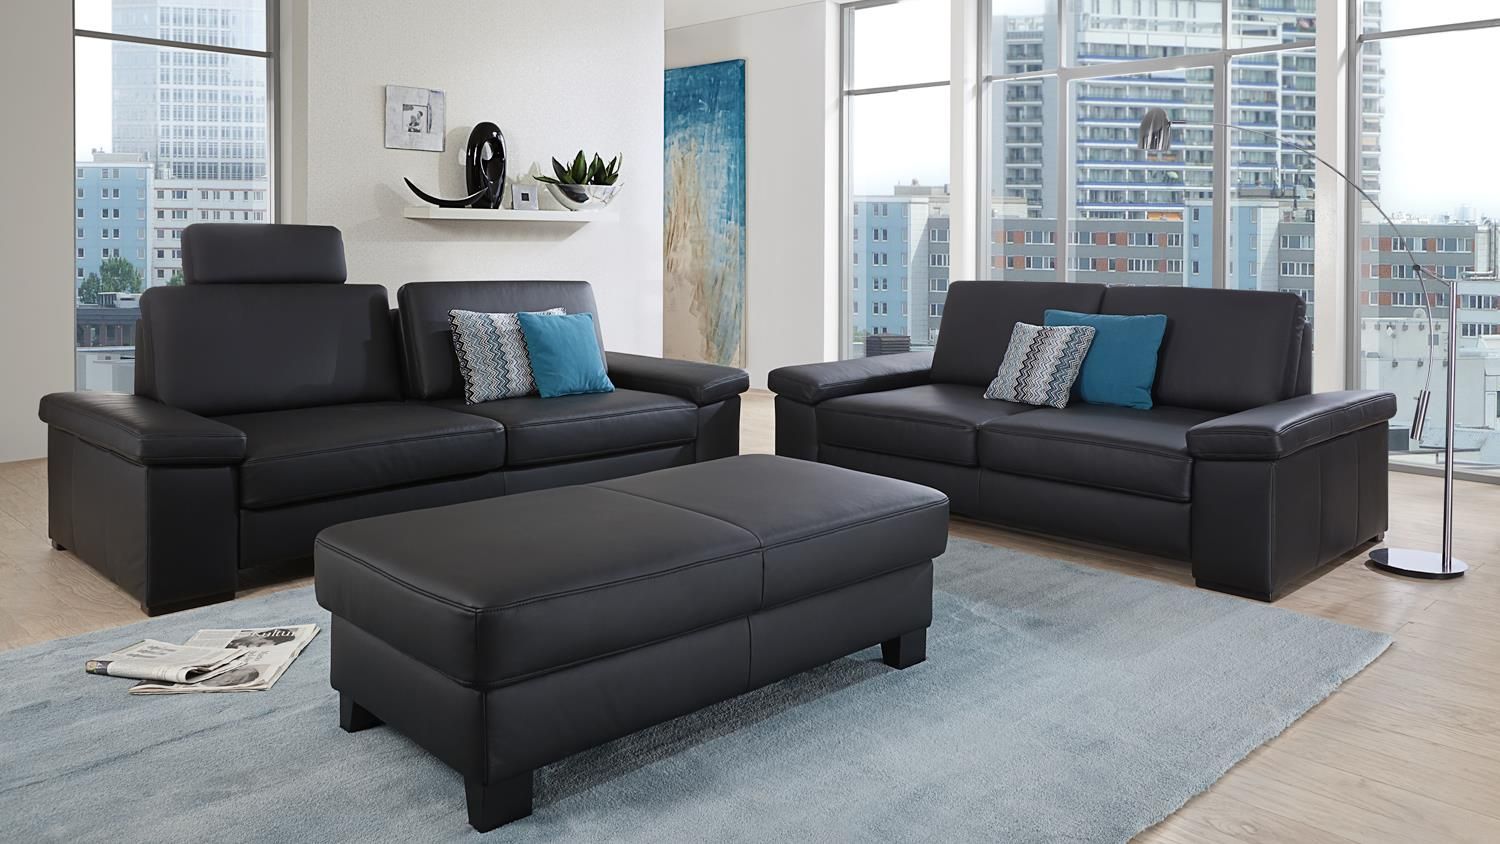 sofa puzzle 3 sitzer in lederlook schwarz mit federkern breite 228 cm. Black Bedroom Furniture Sets. Home Design Ideas